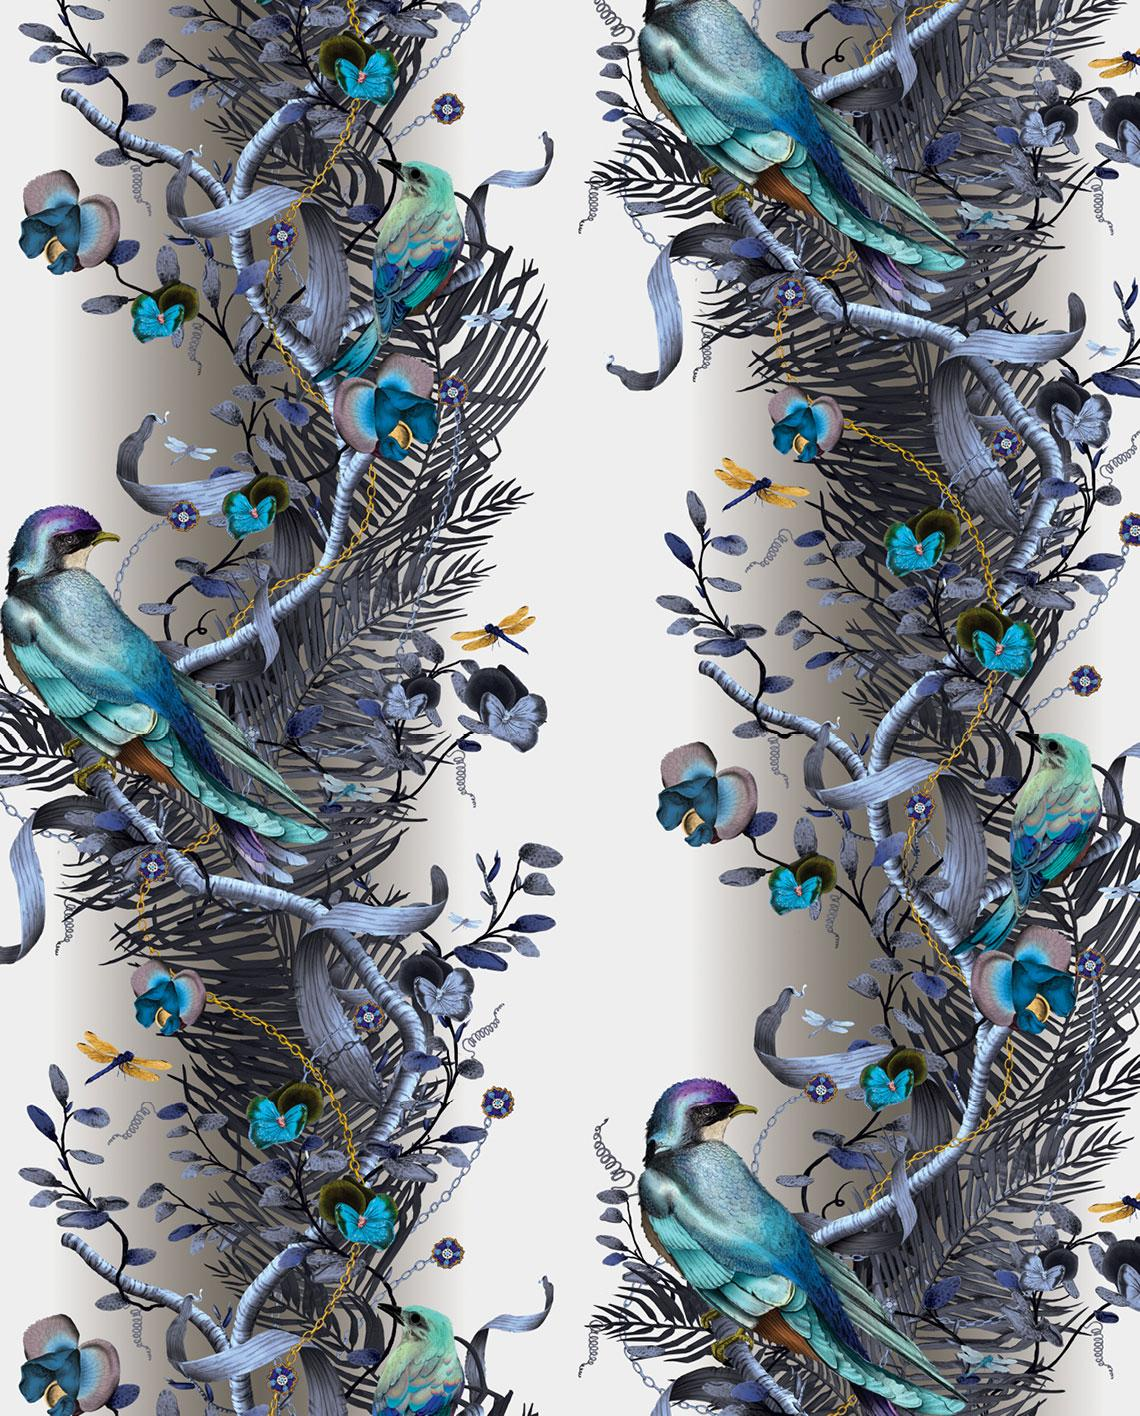 13._Birds_in_Chains_Wallpaper